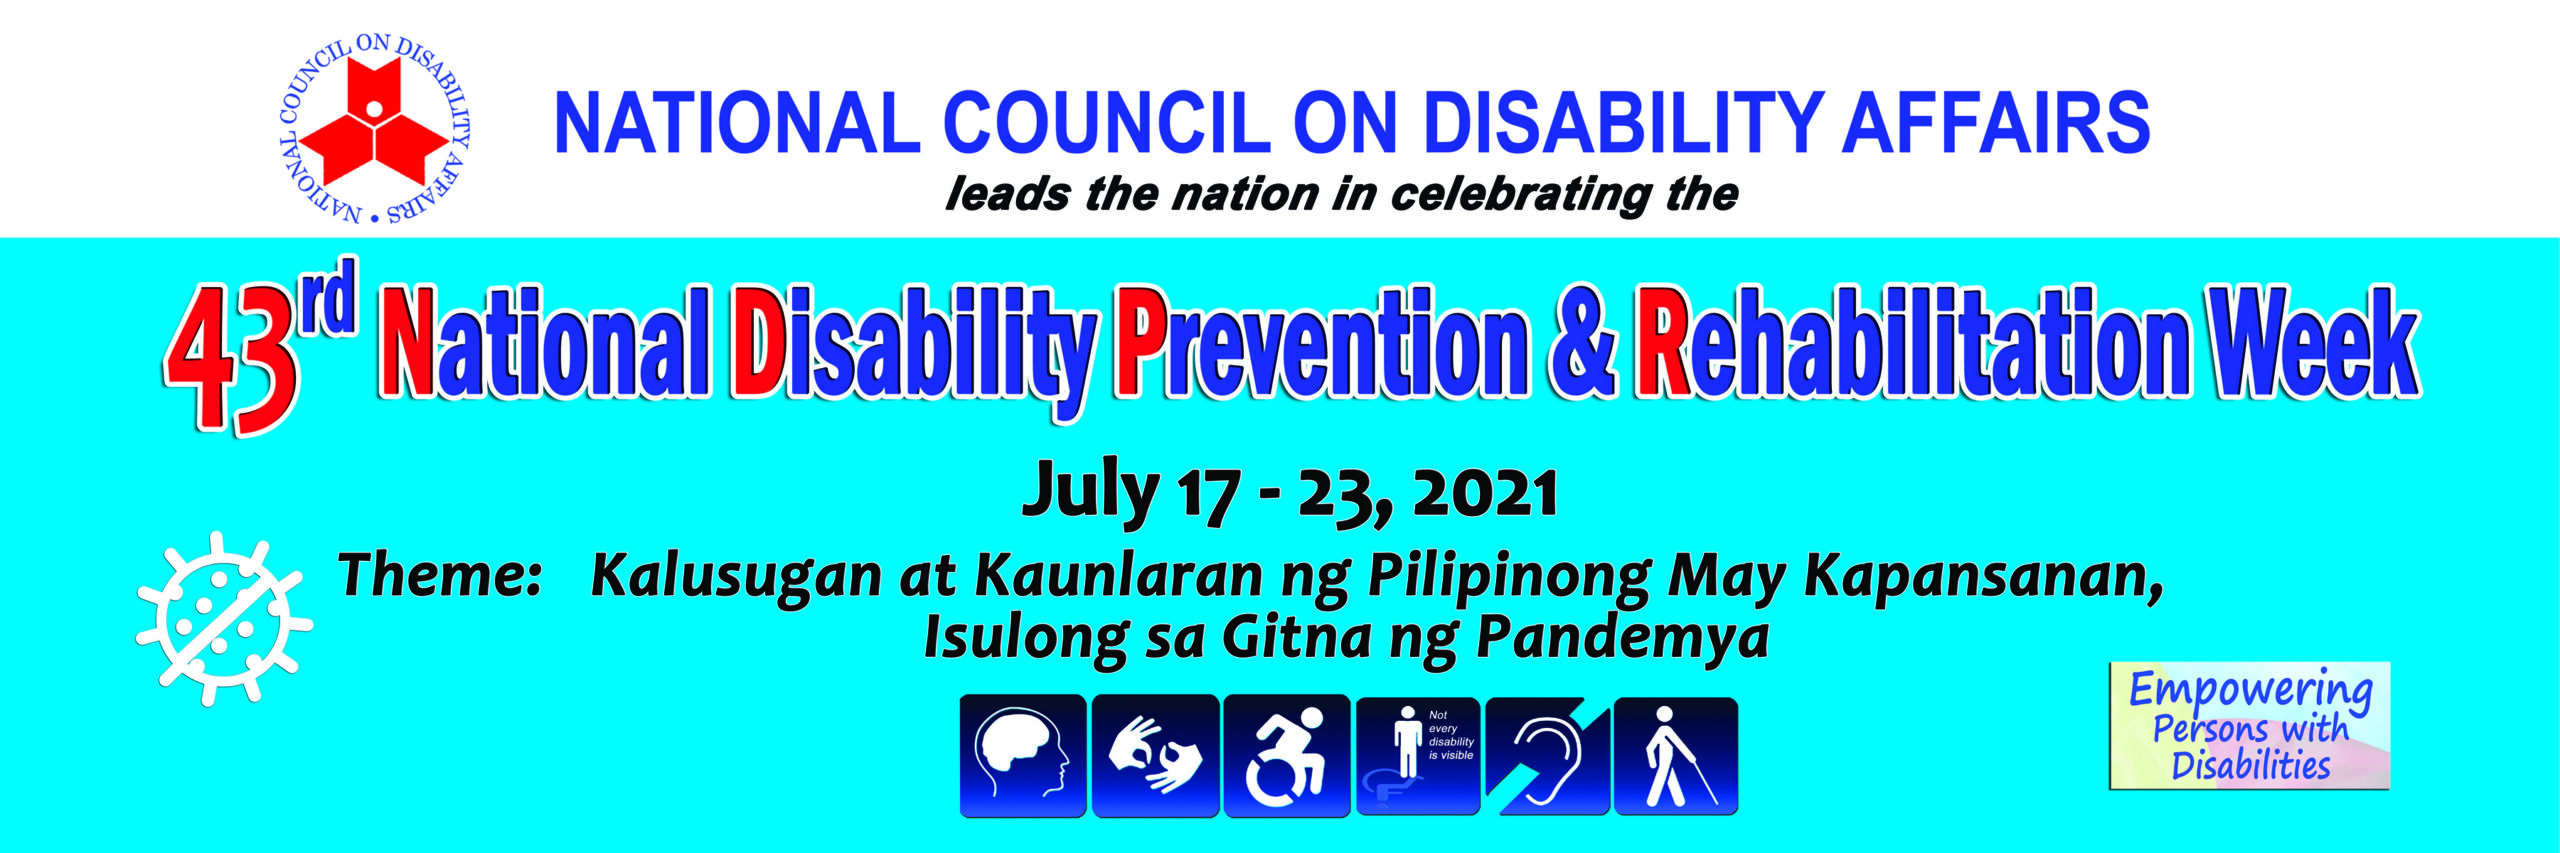 43rd National Disability Prevention and Rehabilitation Week